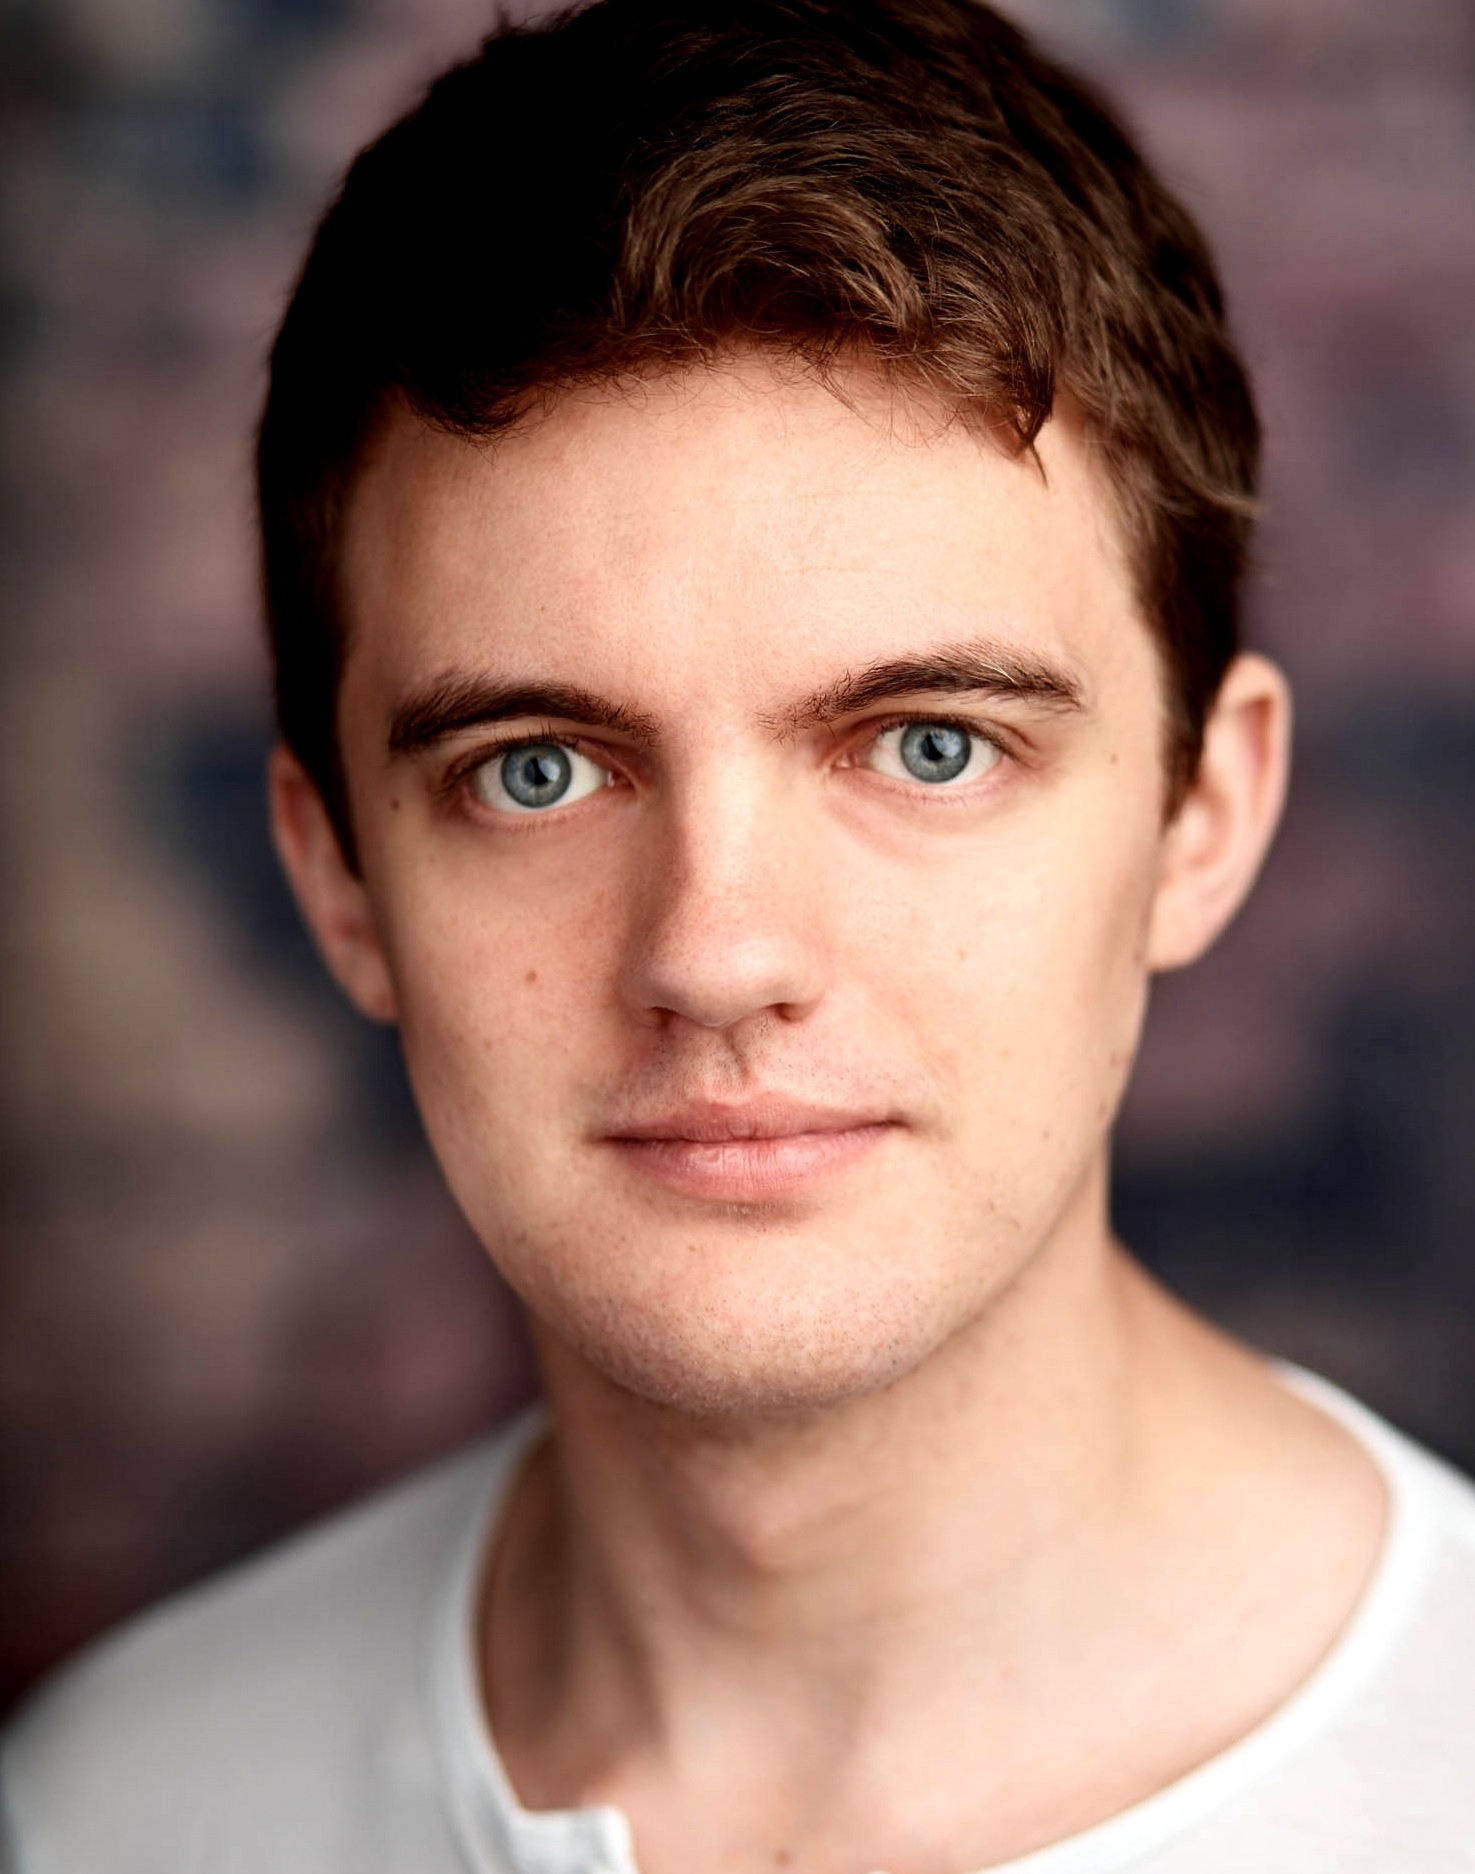 Andy Cantillon Headshot